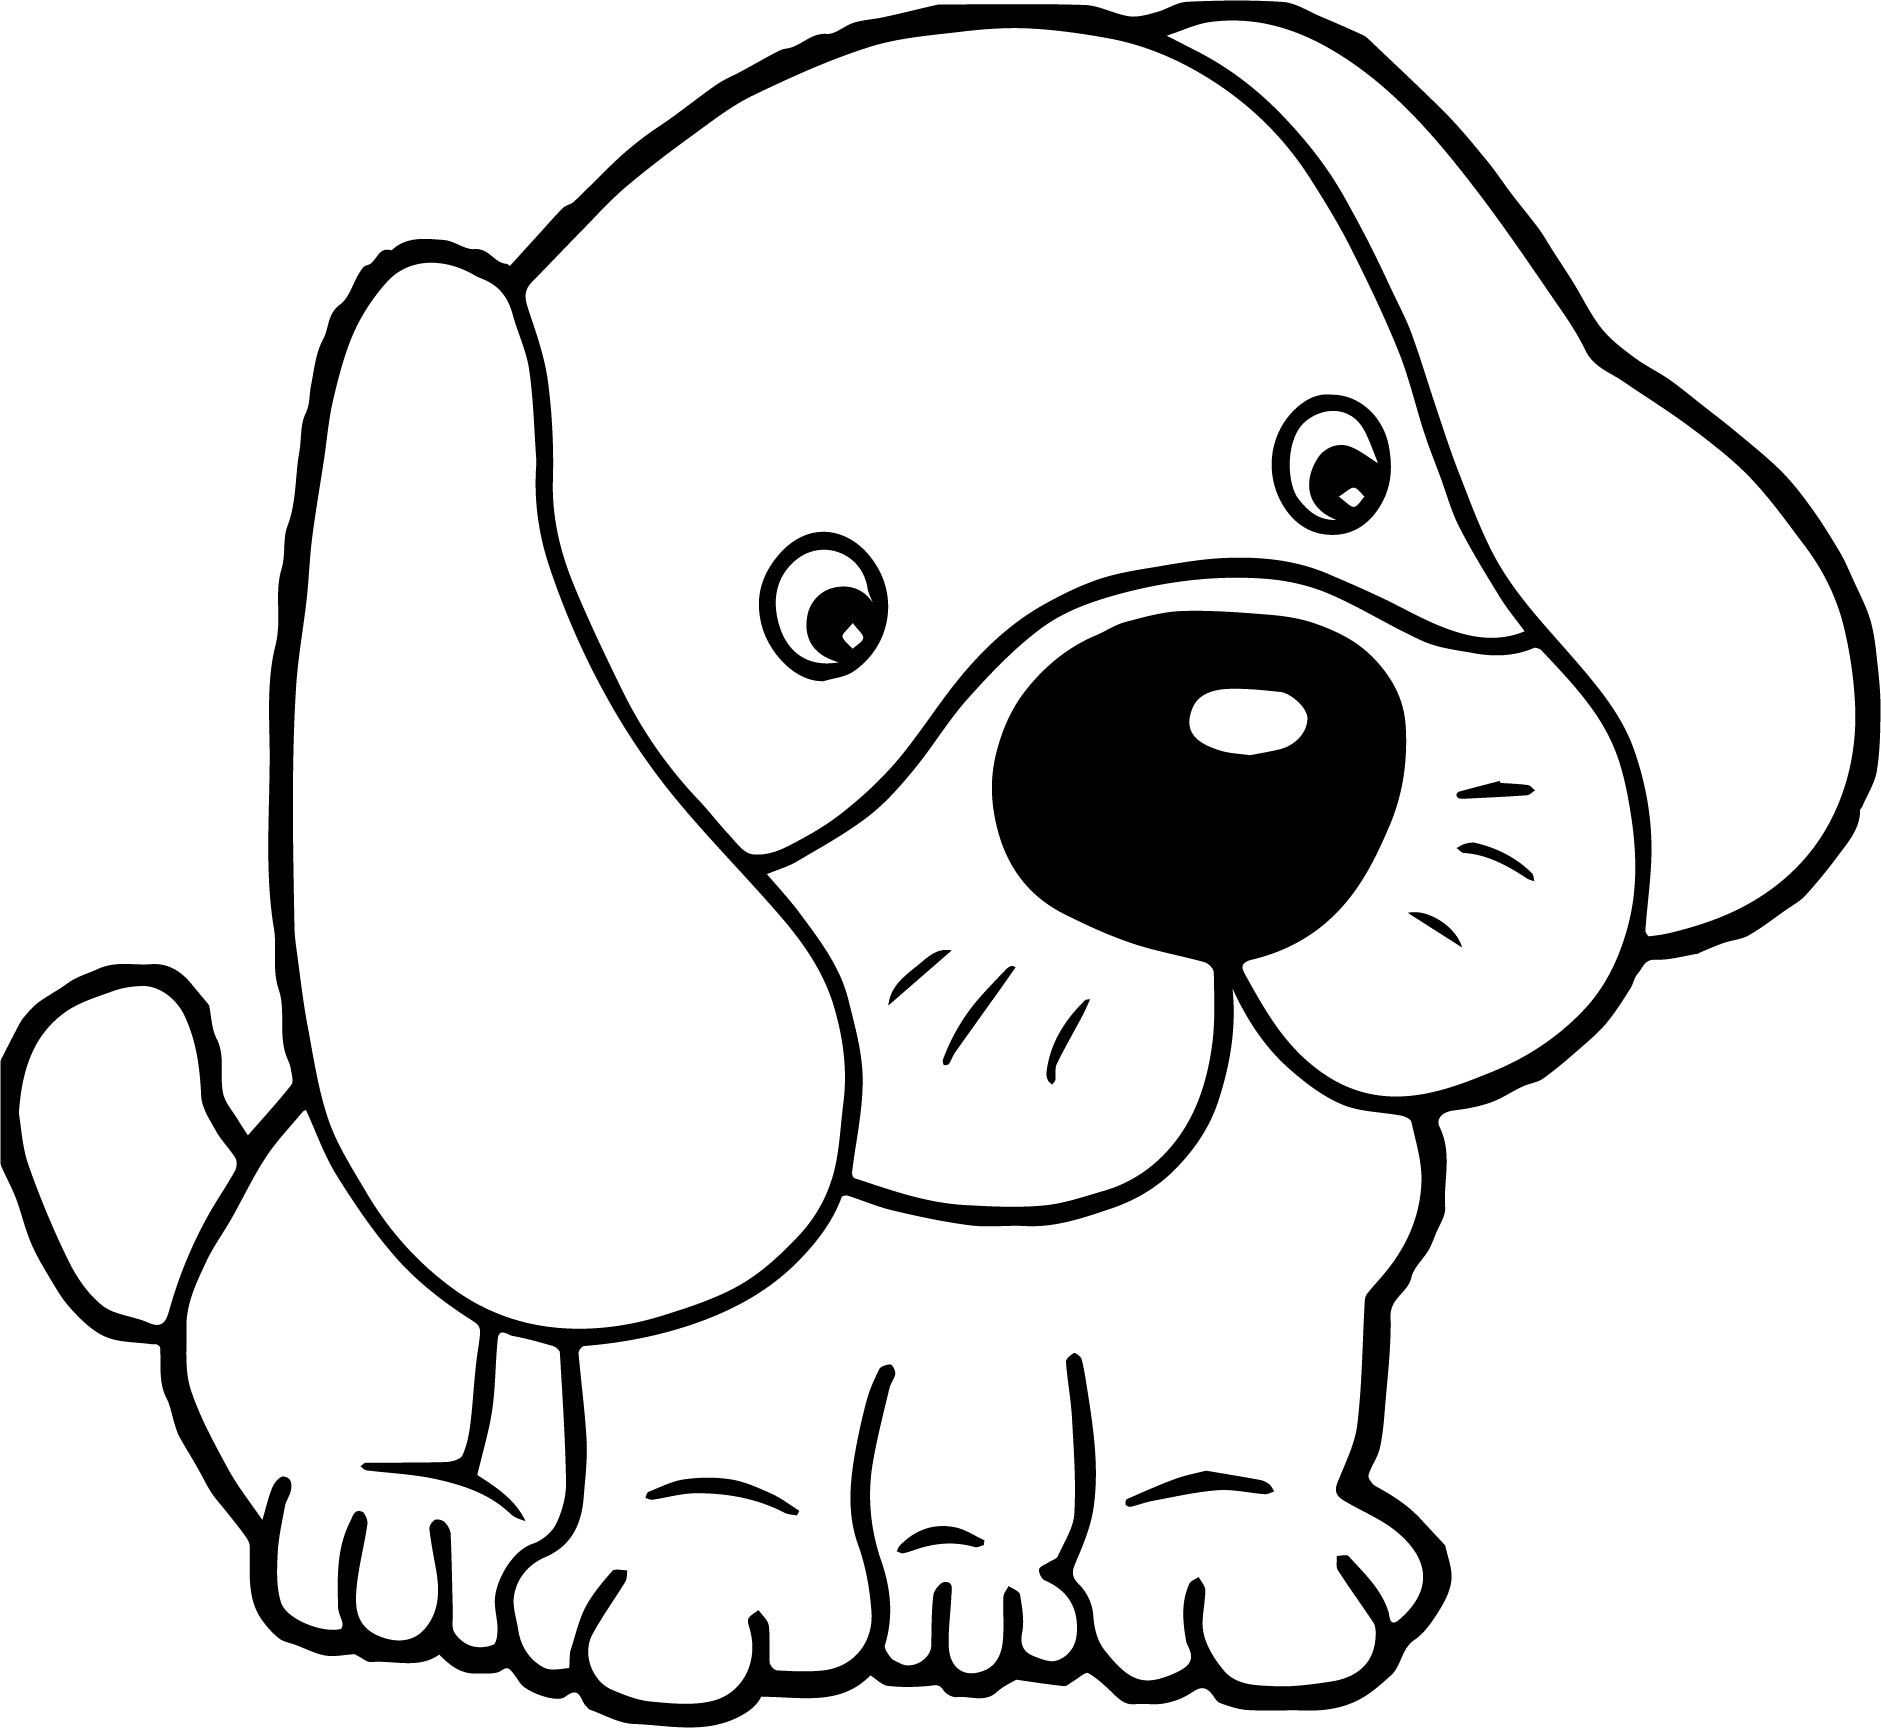 awesome Puppy Dogs Cute Cartoon Animal Images Dog Puppy